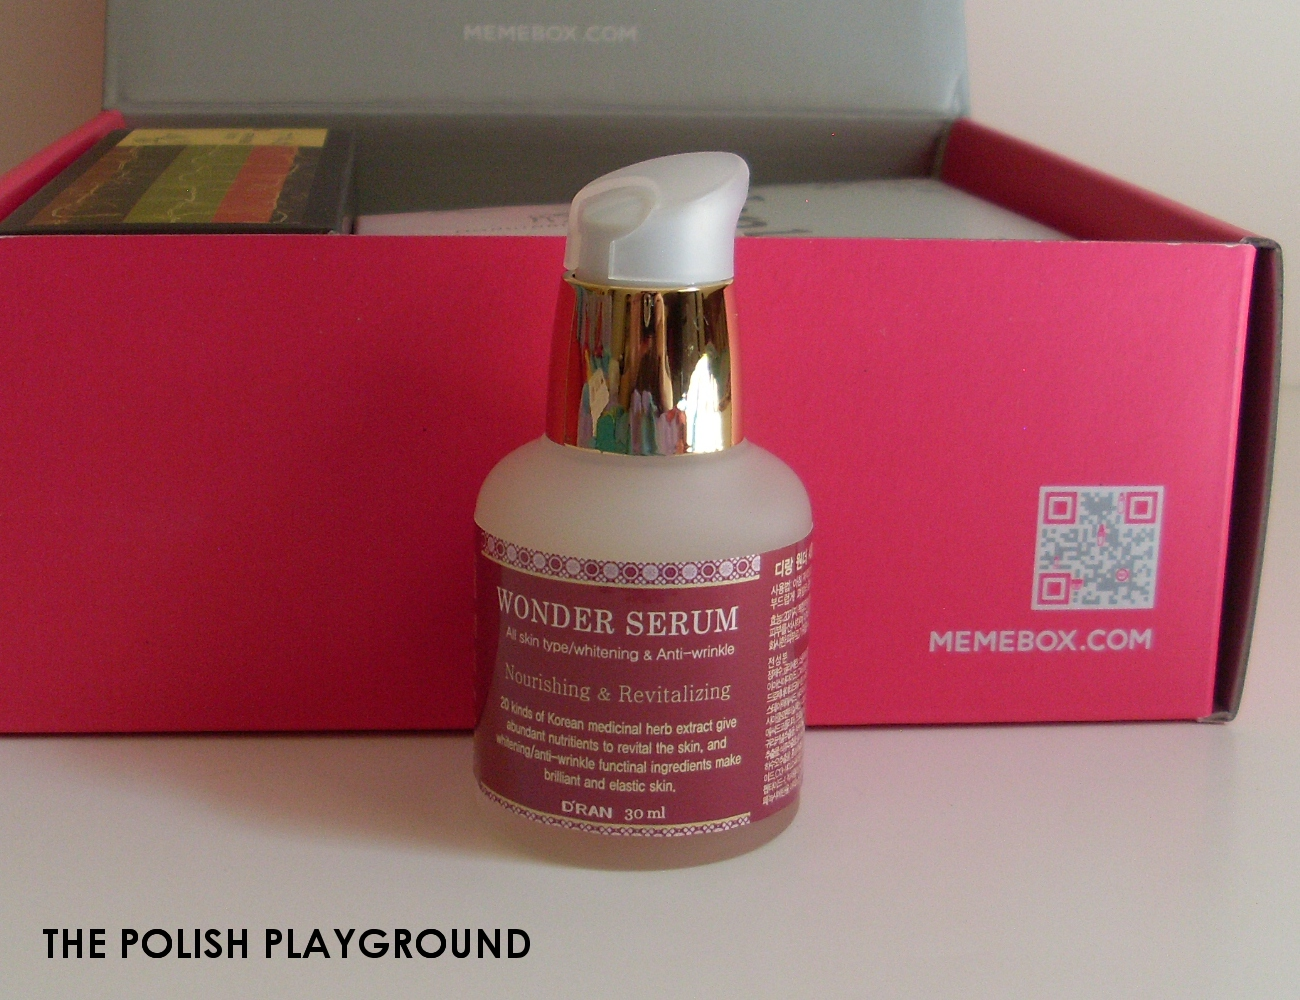 Memebox Special #8 Oriental Medicine Unboxing - D'RAN Wonder Serum